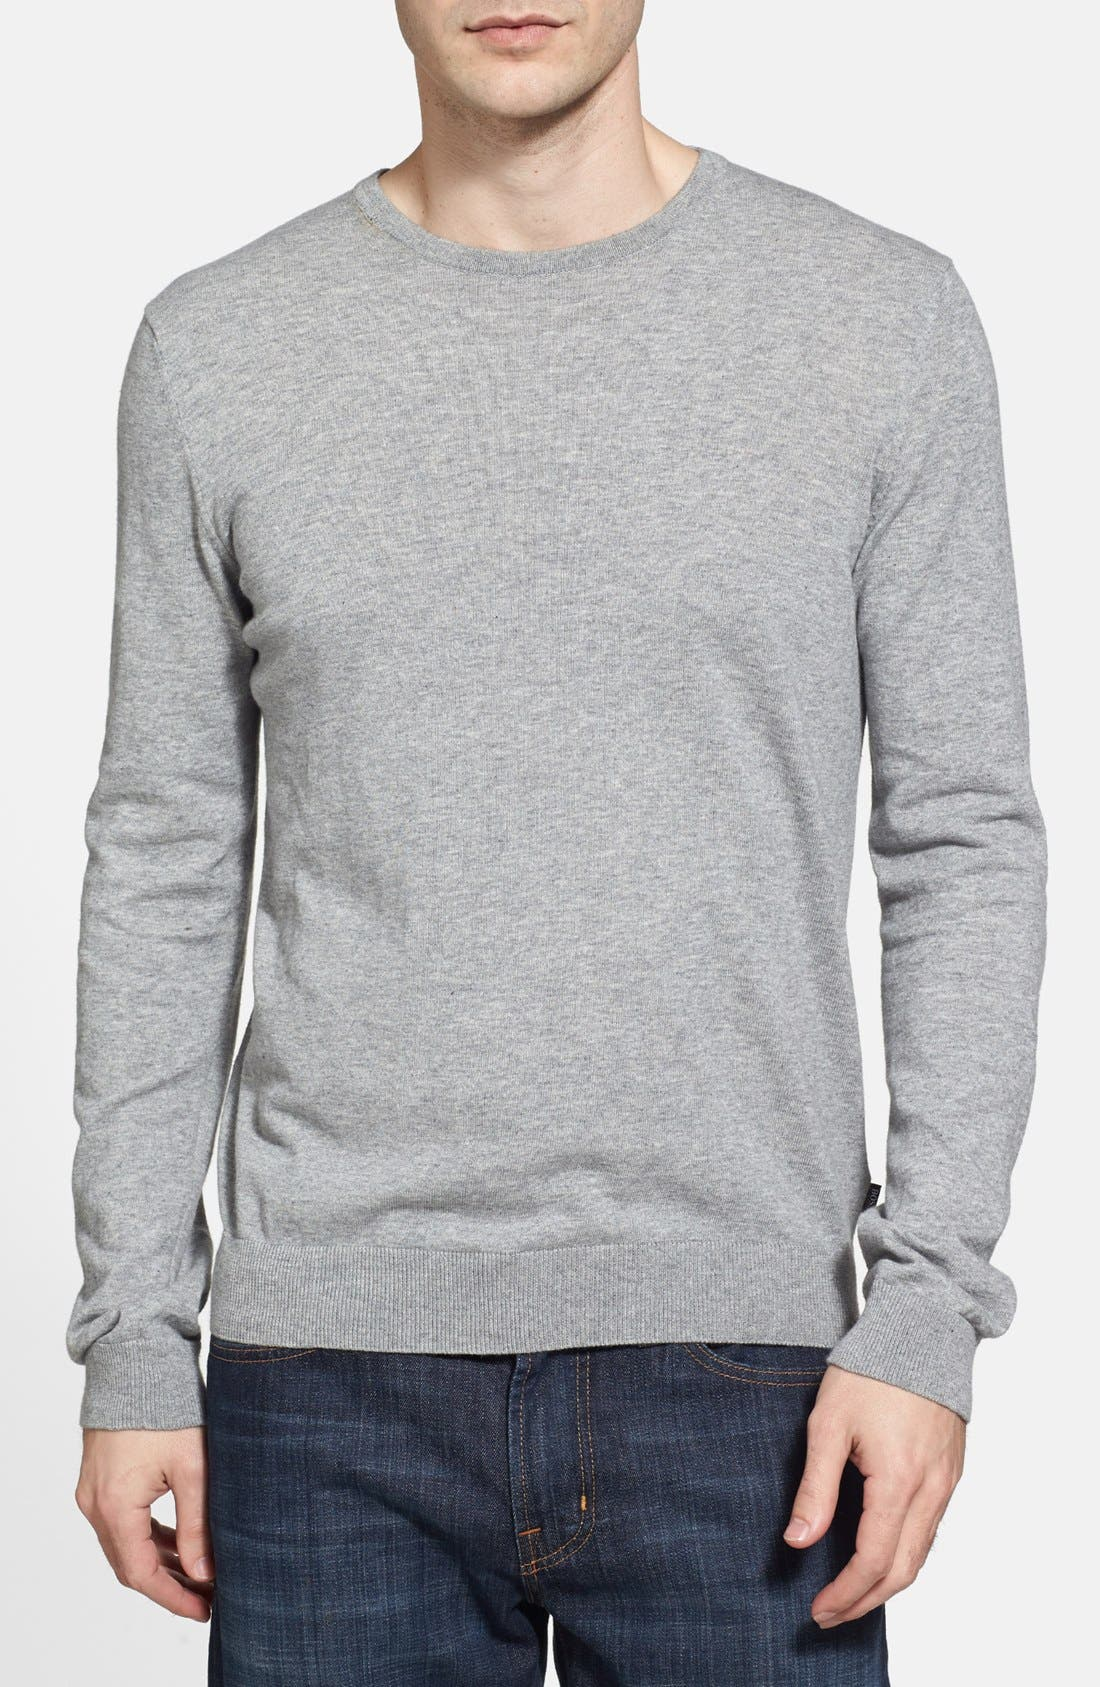 Main Image - BOSS HUGO BOSS 'Perinus' Crewneck Sweater